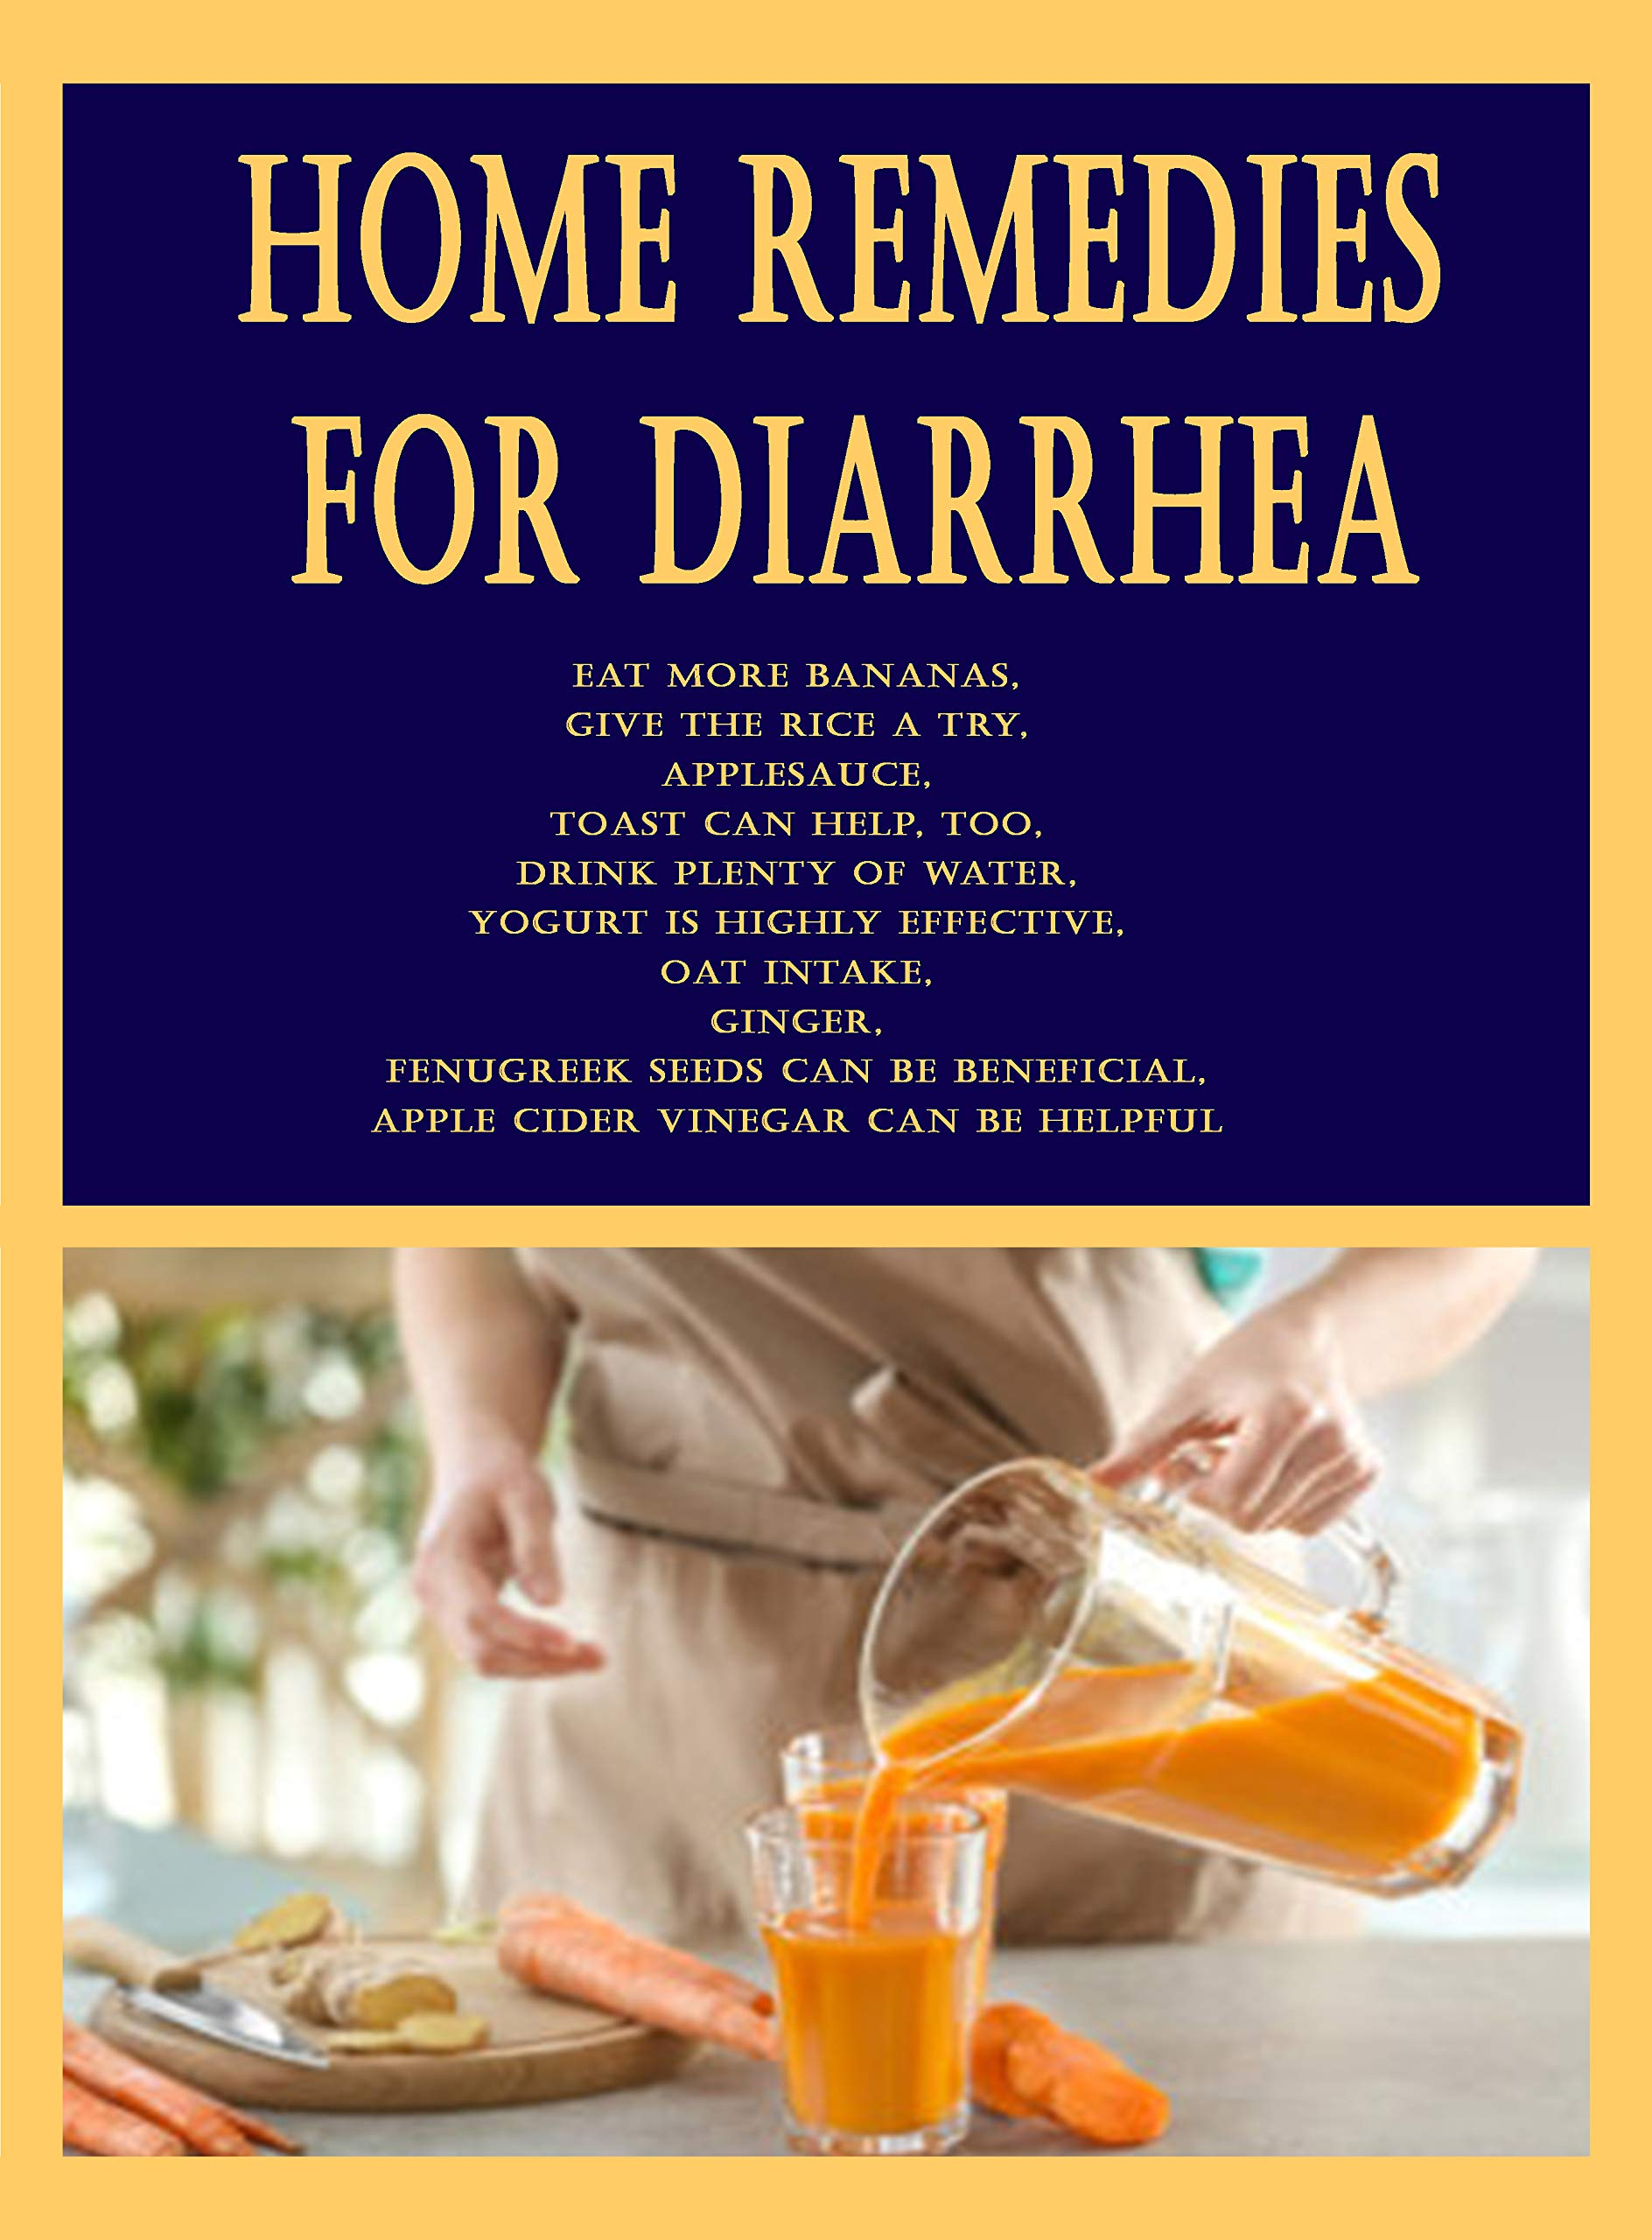 Home Remedies for Diarrhea: Eat more bananas, Give the rice a try, applesauce, Toast can help, too, Drink plenty of water, Yogurt is highly effective, oat intake, ginger